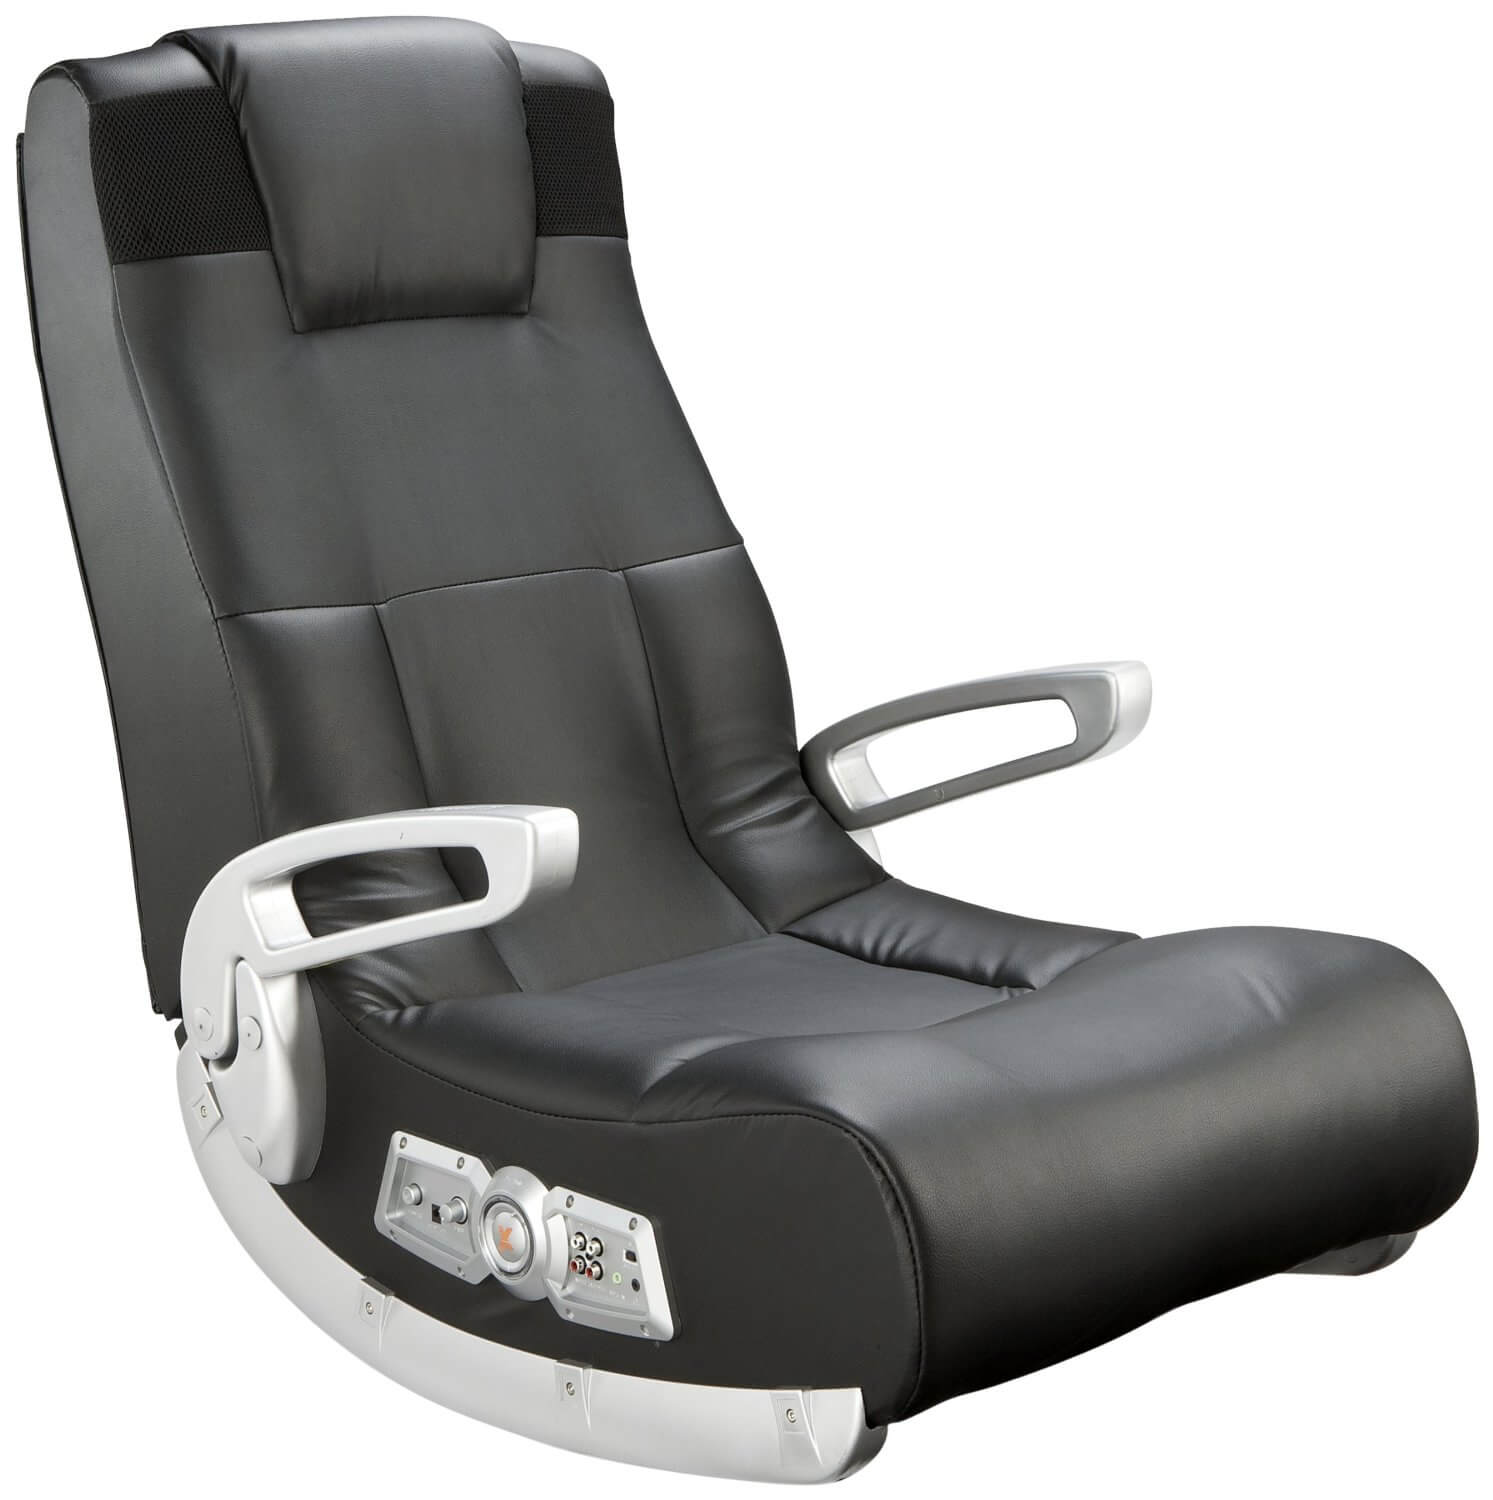 Best X Rocker Gaming Chairs Jan Xrocker Buyer Guide